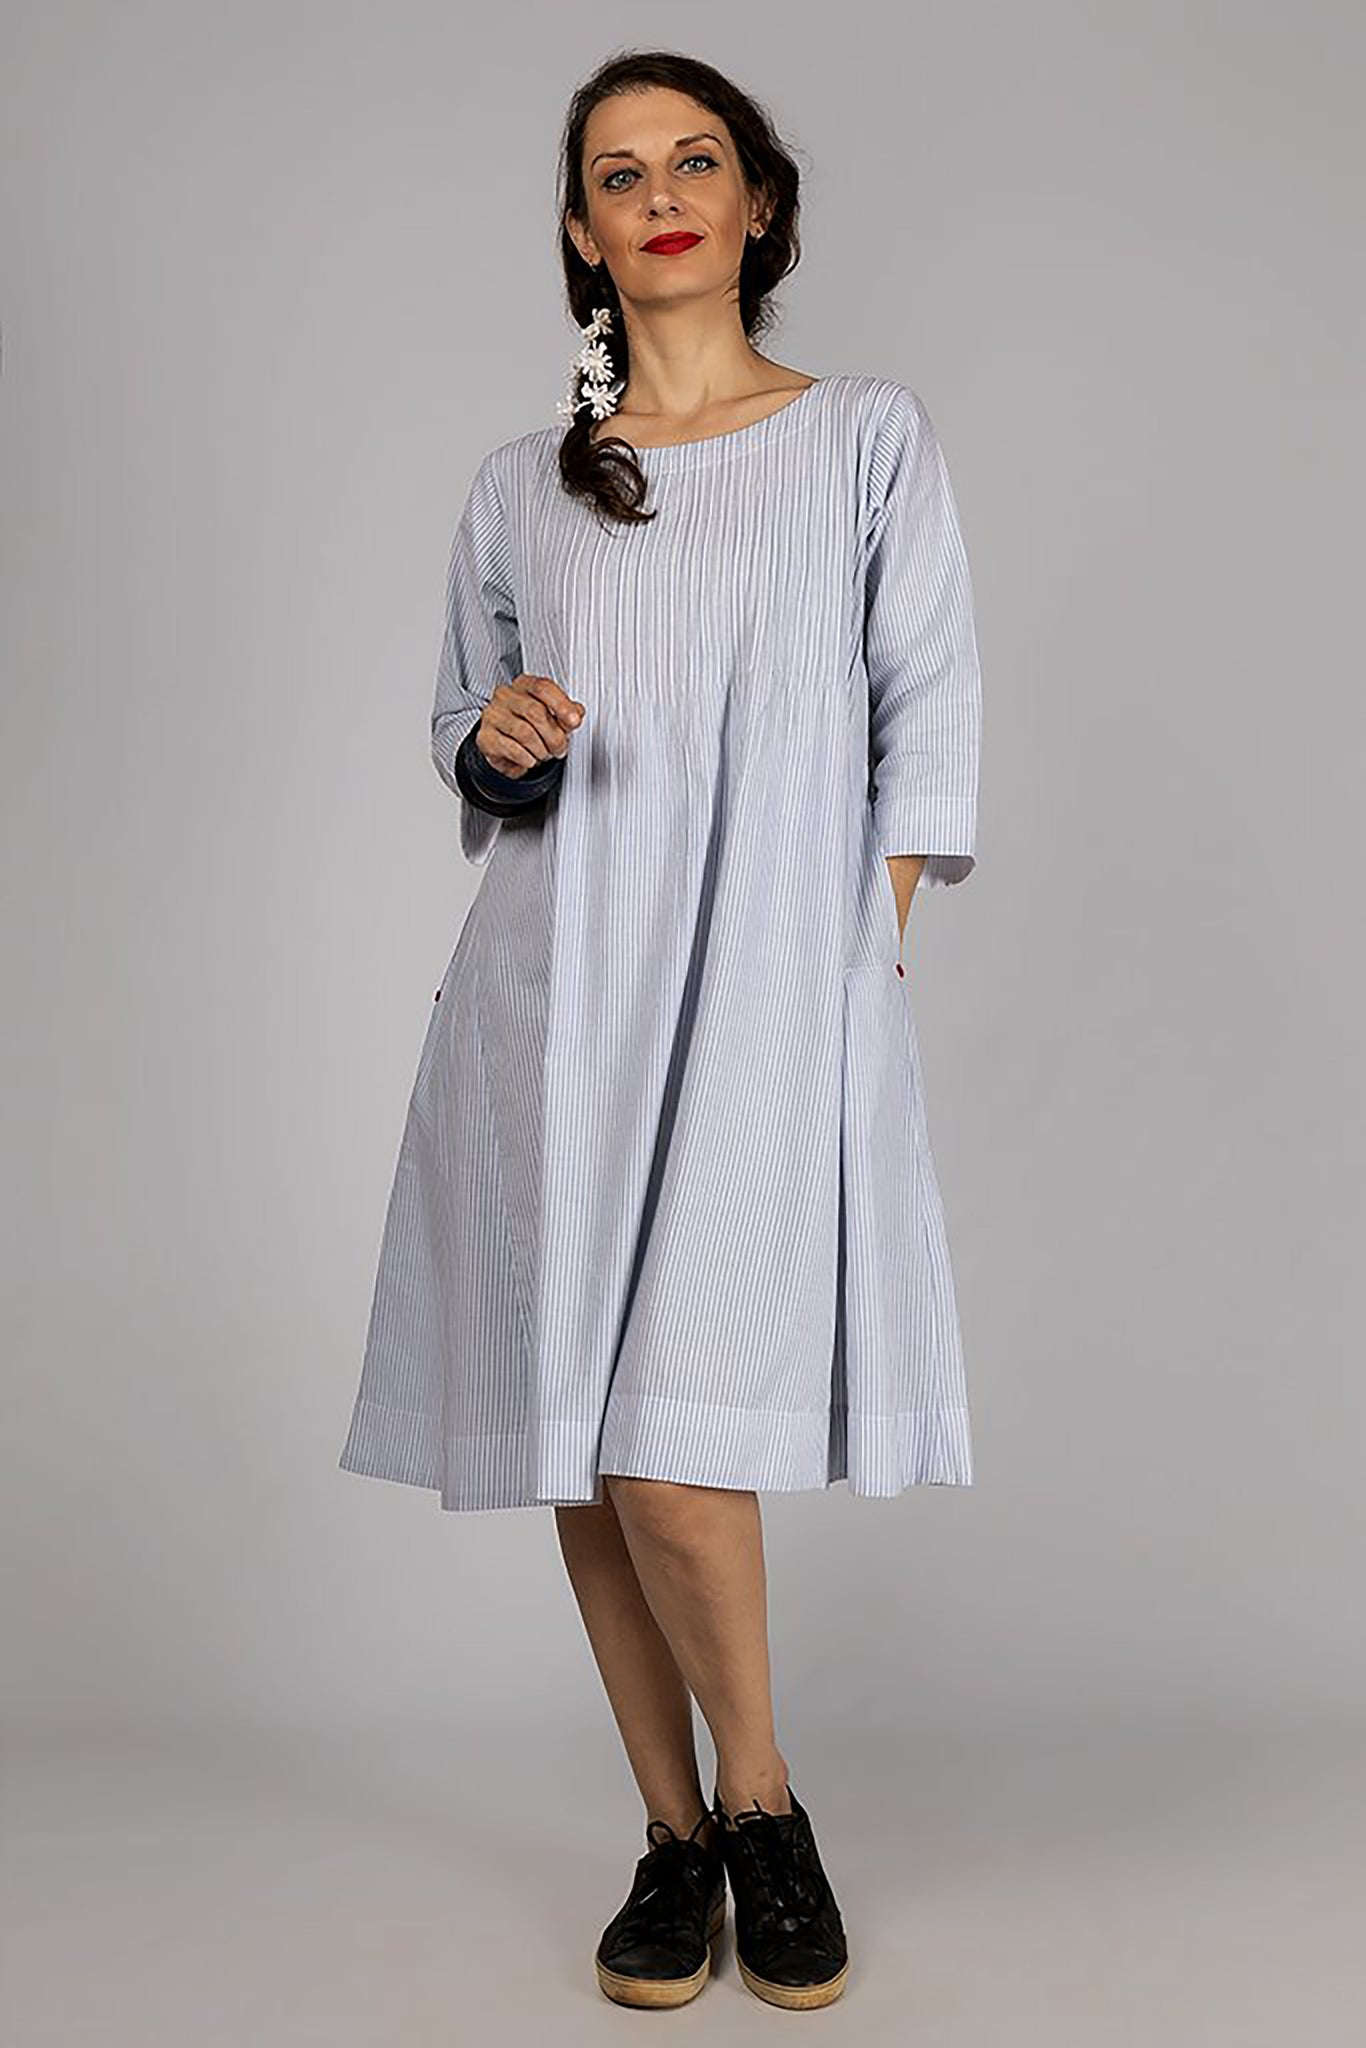 Blue Organic Cotton Striped Dress - SERENE